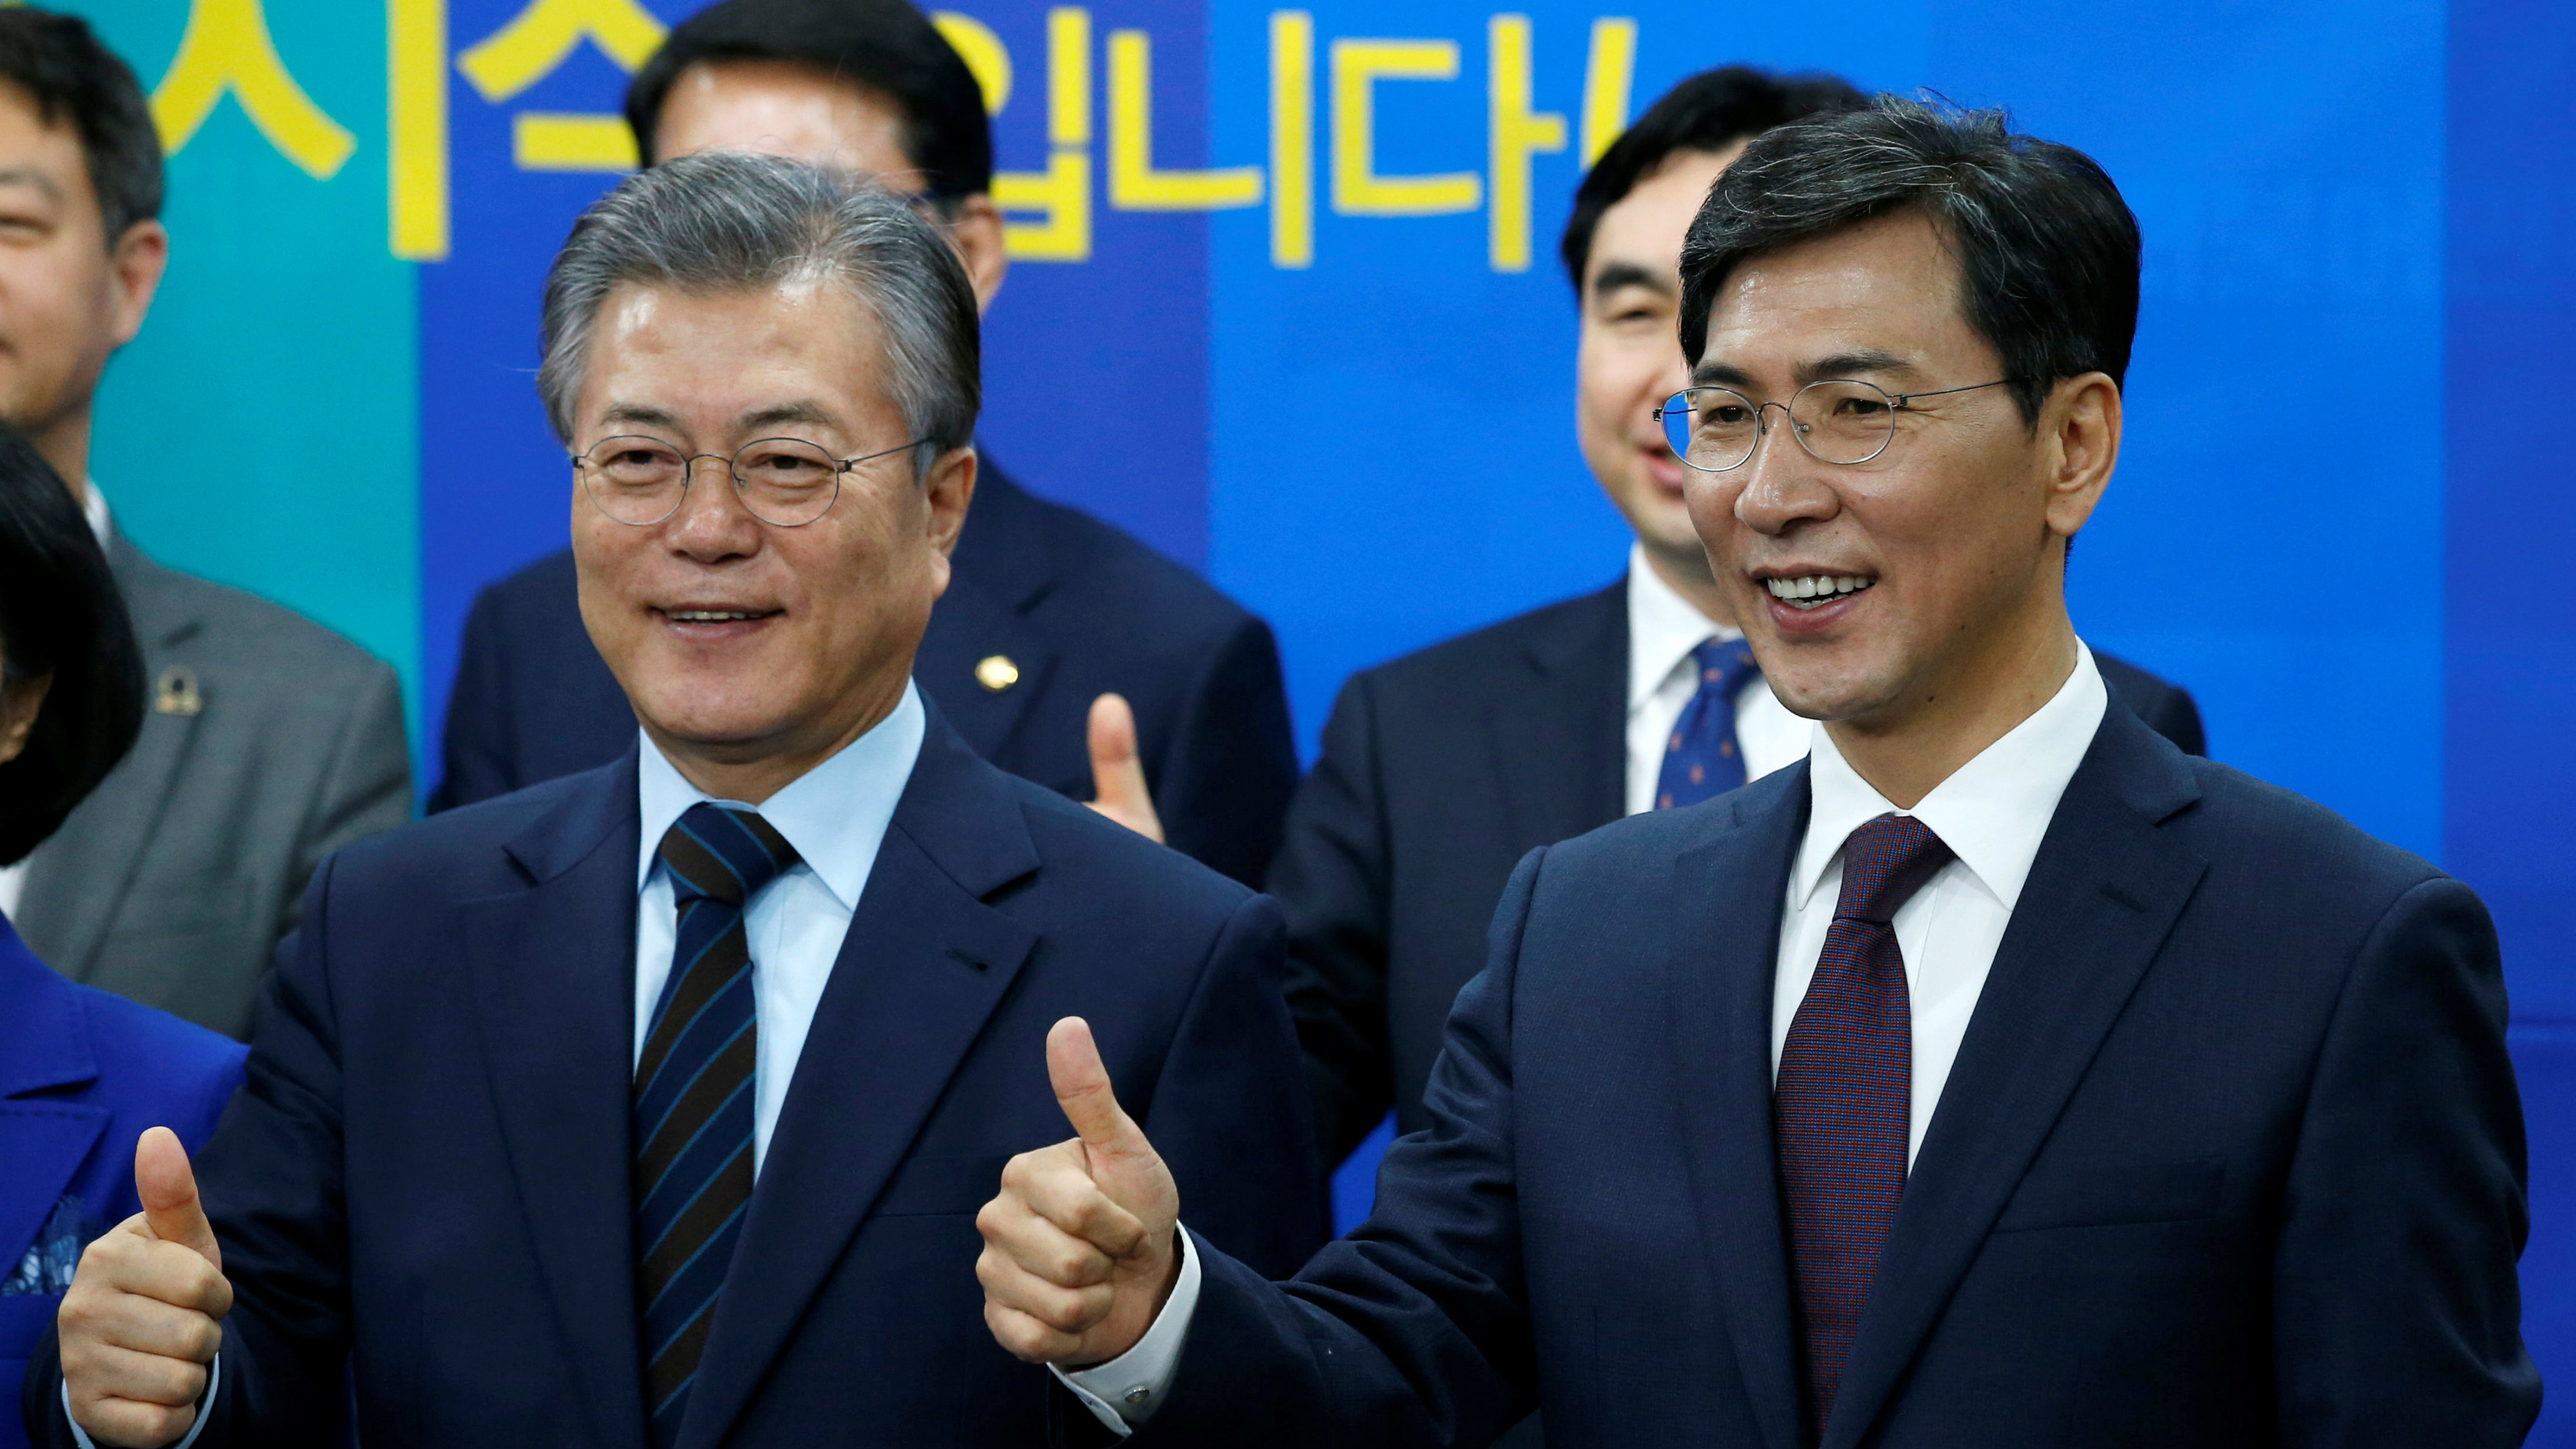 The Democratic PartyÕs candidates for the presidential primary Moon Jae-in (L) and Ahn Hee-jung pose with thumbs-up at an event to declare their fair contest in the partyÕs presidential primary in Seoul, South Korea